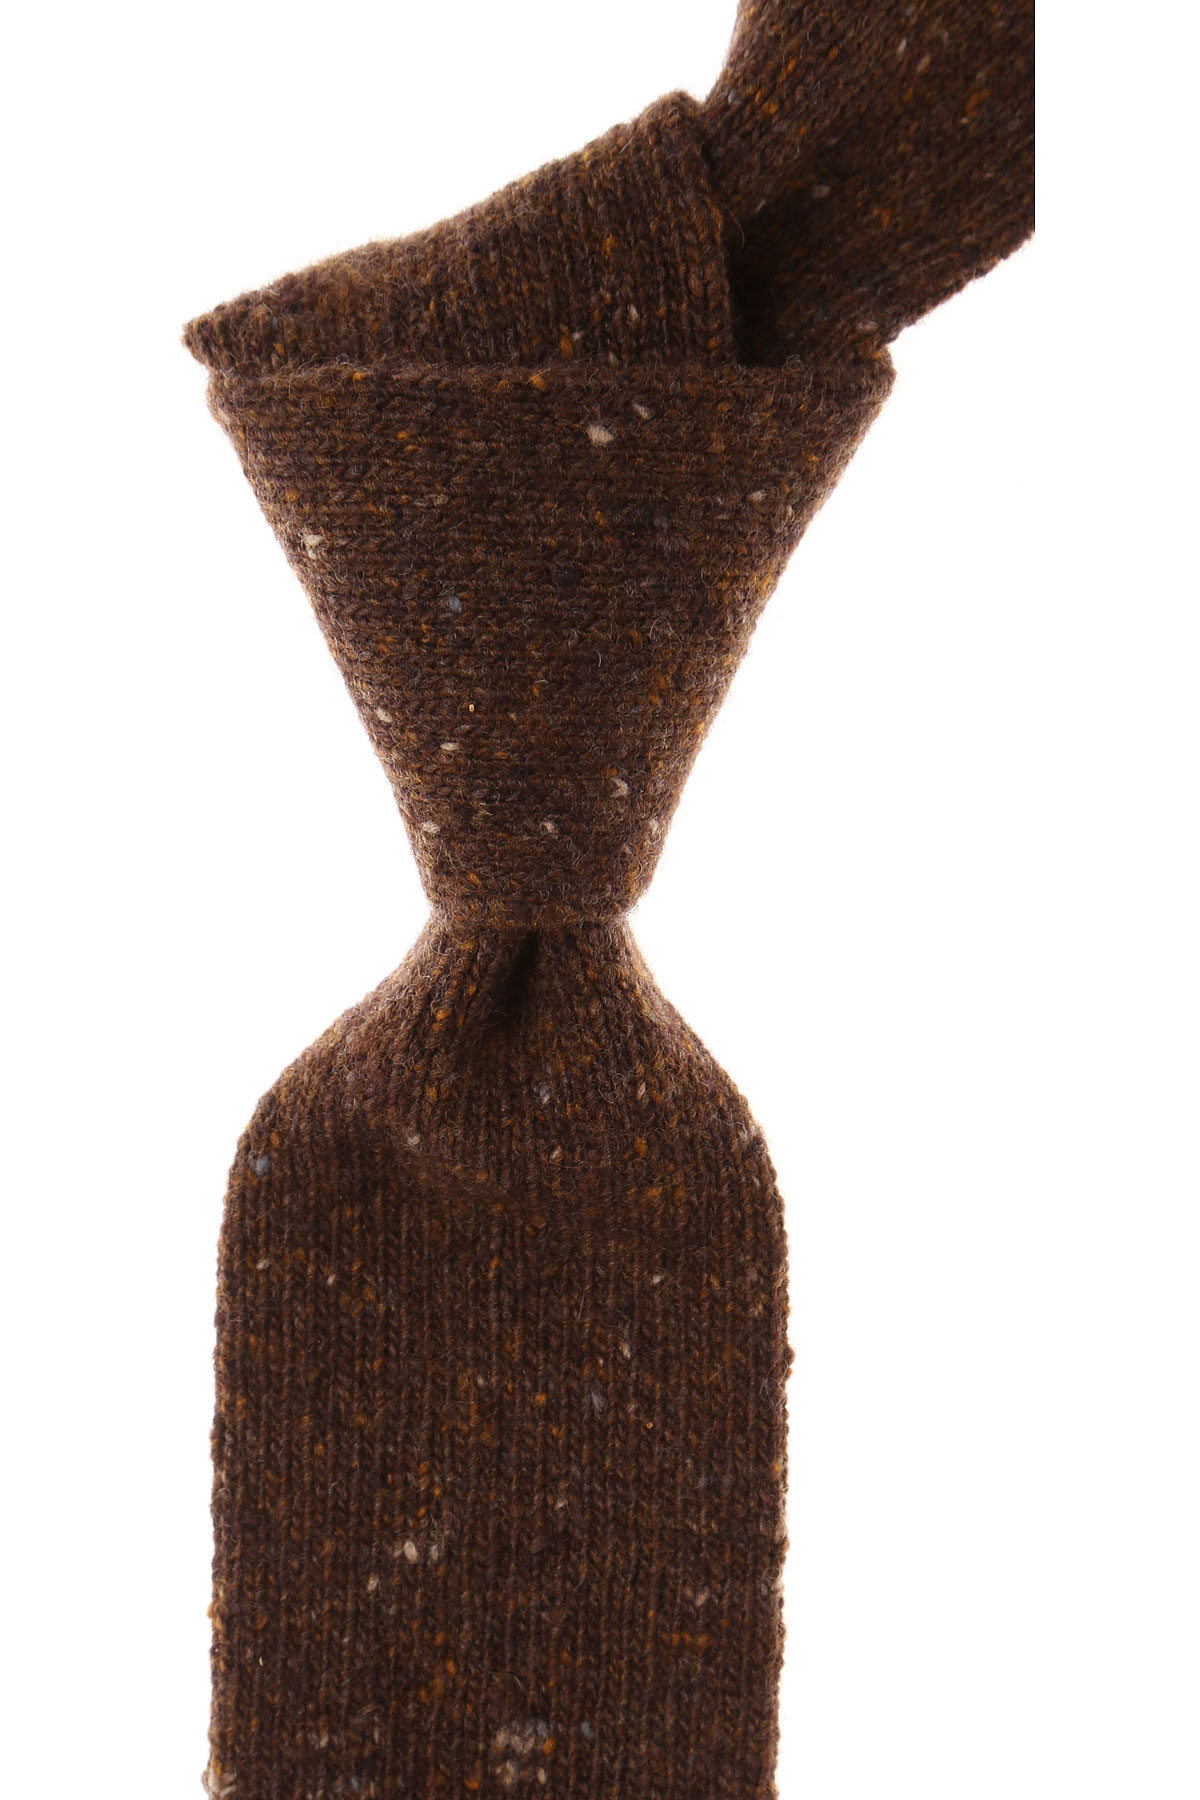 Ermenegildo_Zegna_Ties_On_Sale_Brown_Melange_Wool_2019